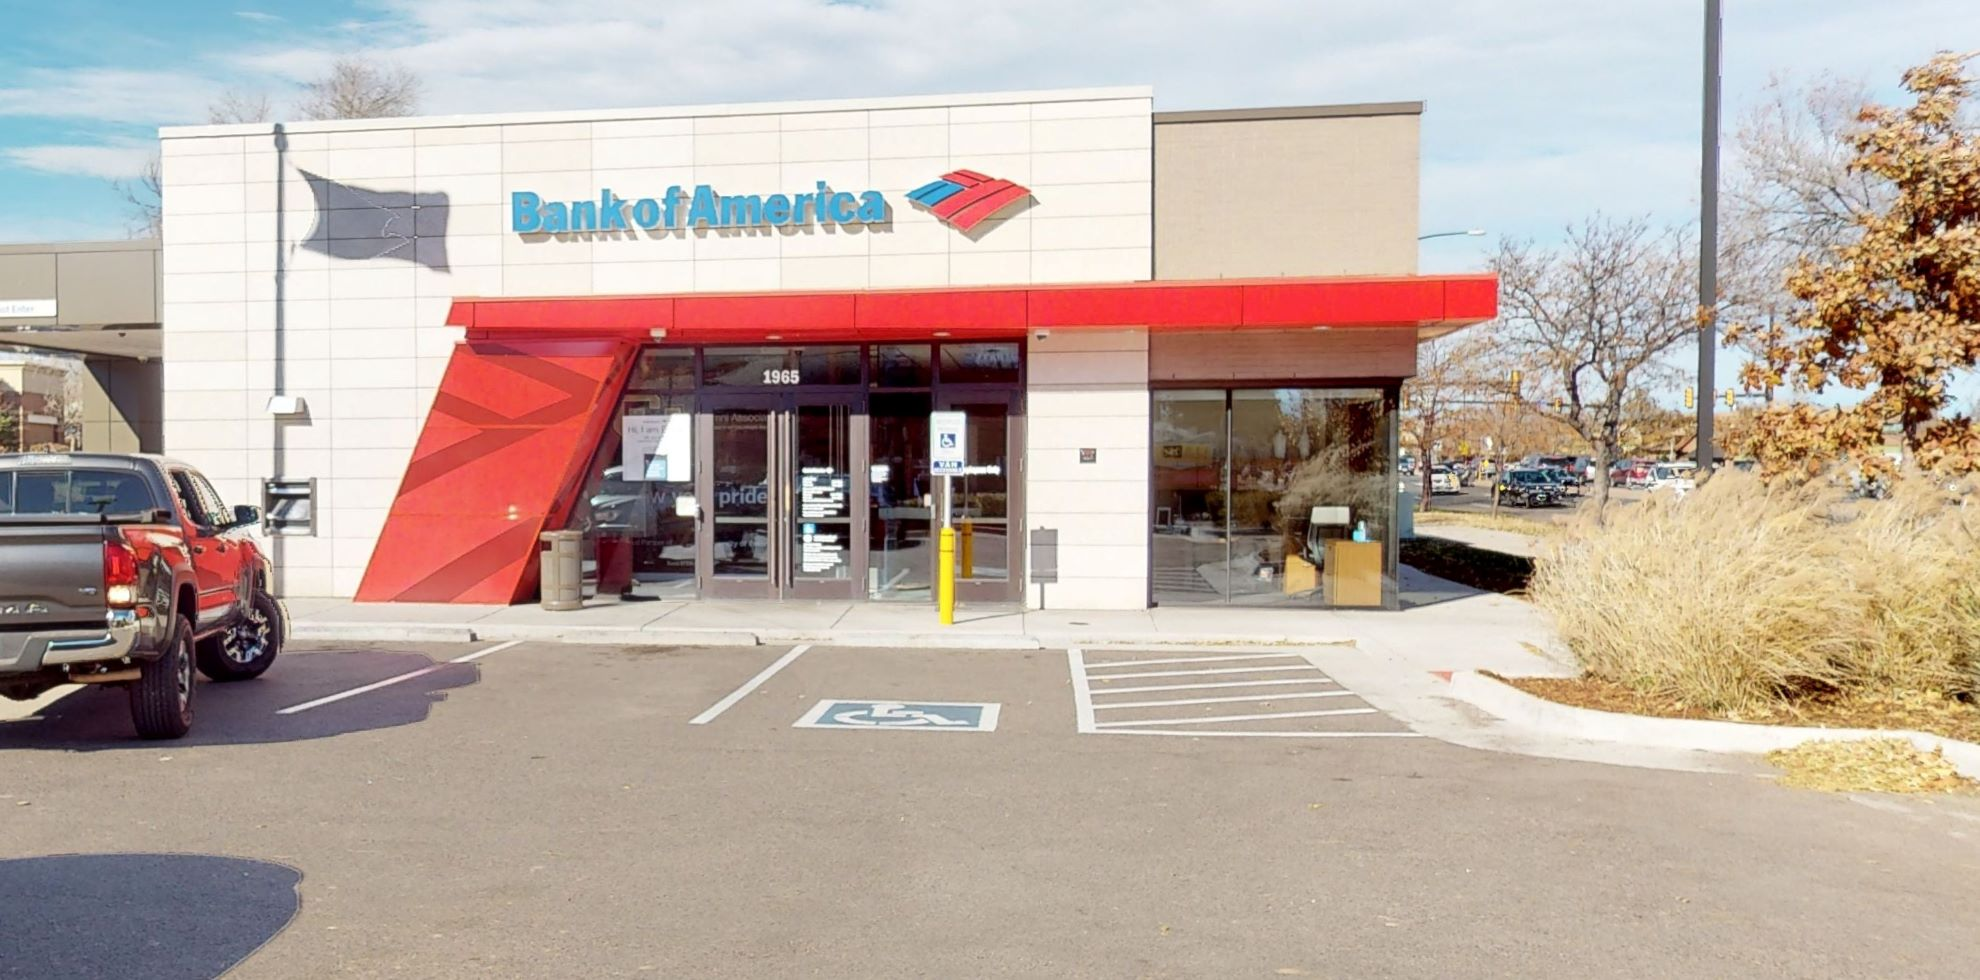 Bank of America financial center with drive-thru ATM | 1965 28th St, Boulder, CO 80301